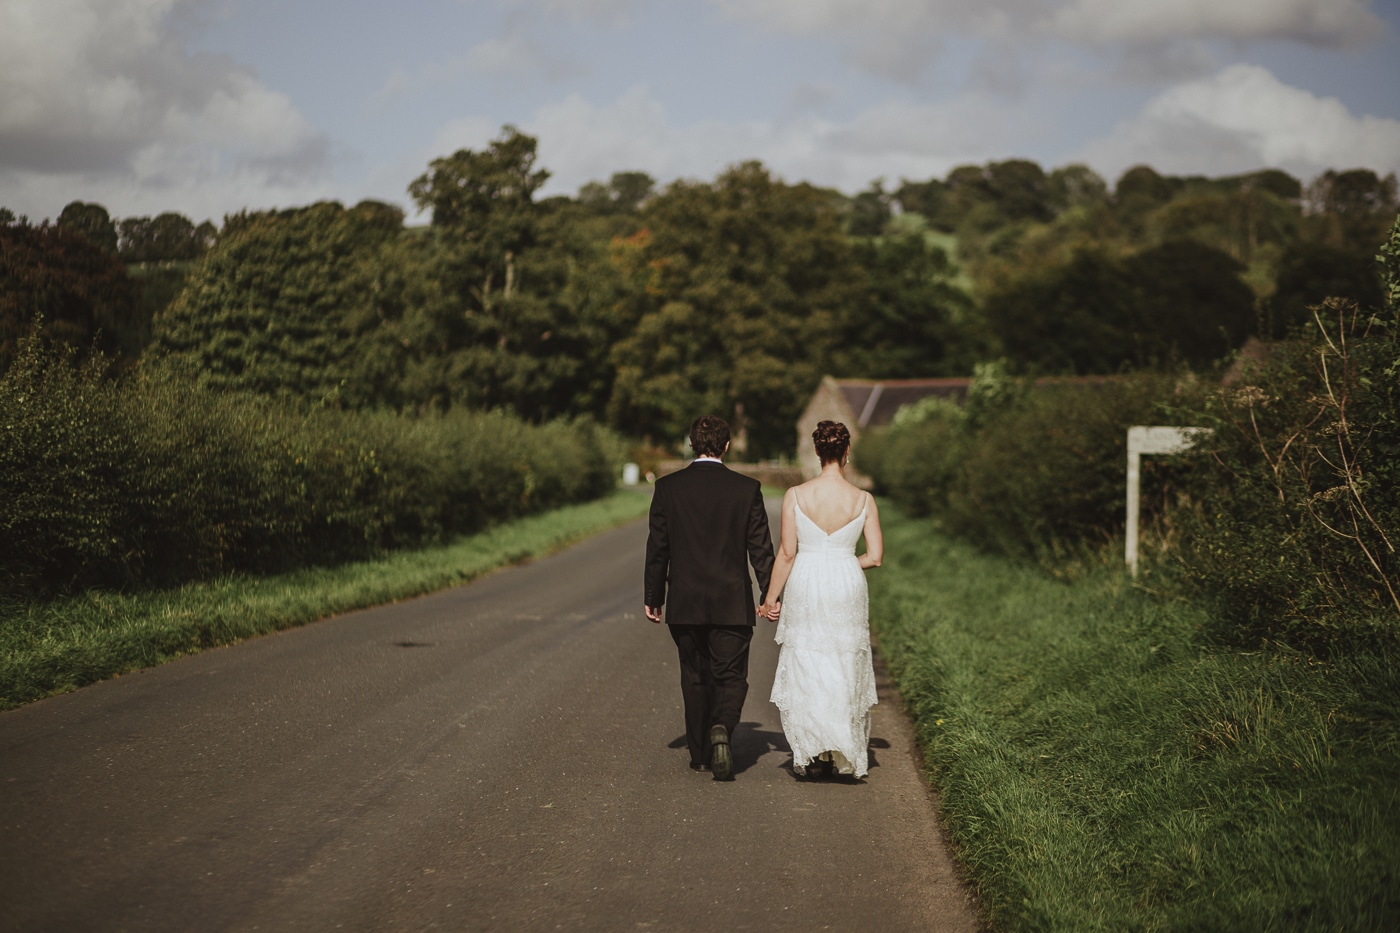 Bride and groom walking down a hedge lined road after eloping by Joshua Wyborn Photographic